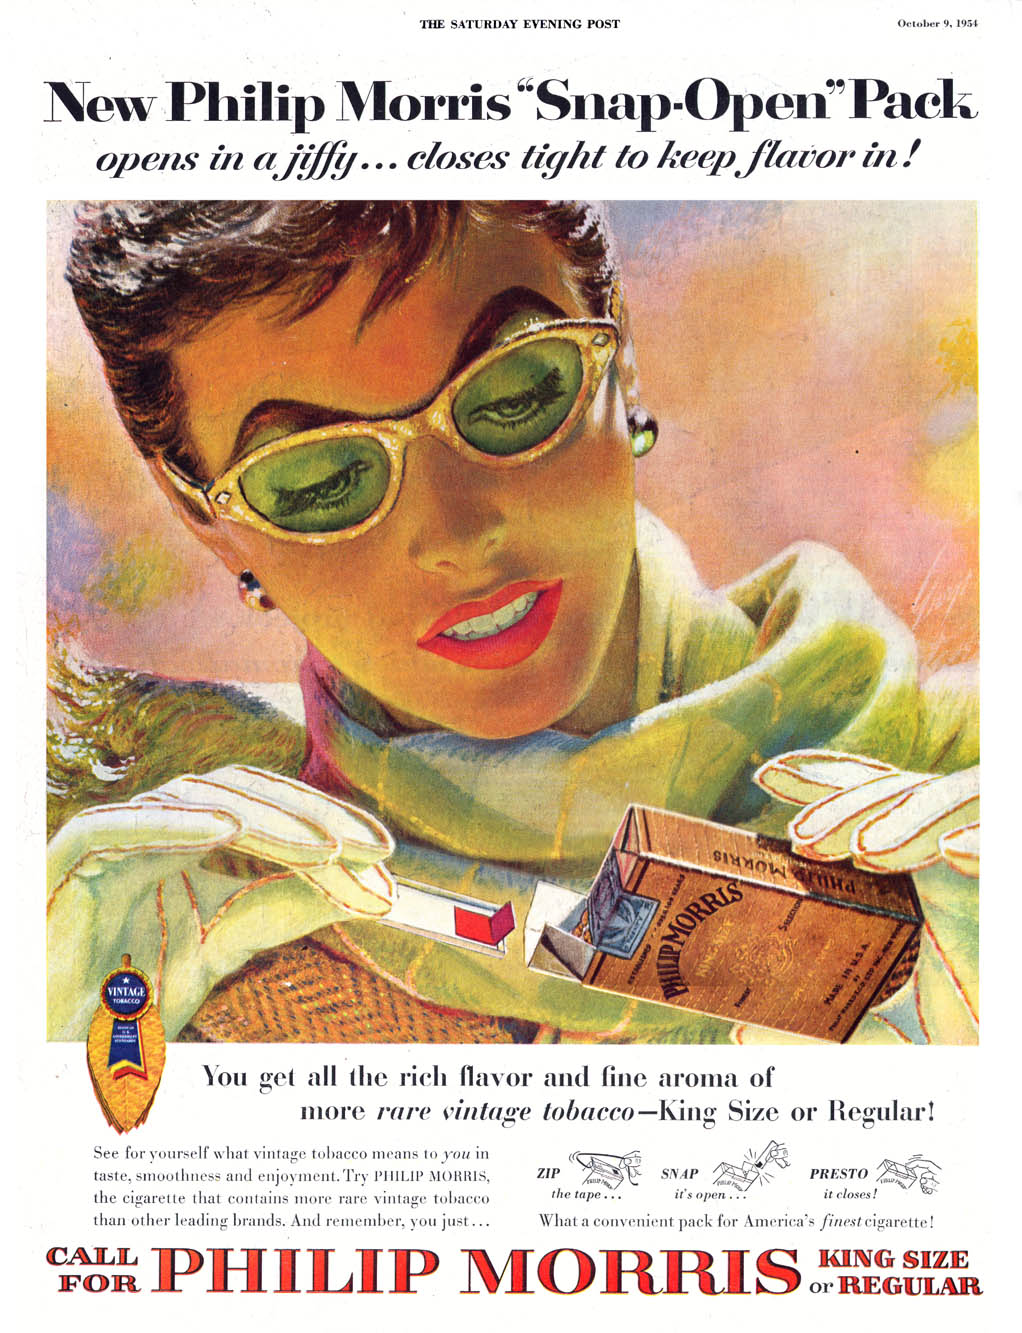 Phillip Morris - illustrated by Edwin Georgi - published in The Saturday Evening Post - October 9, 1954